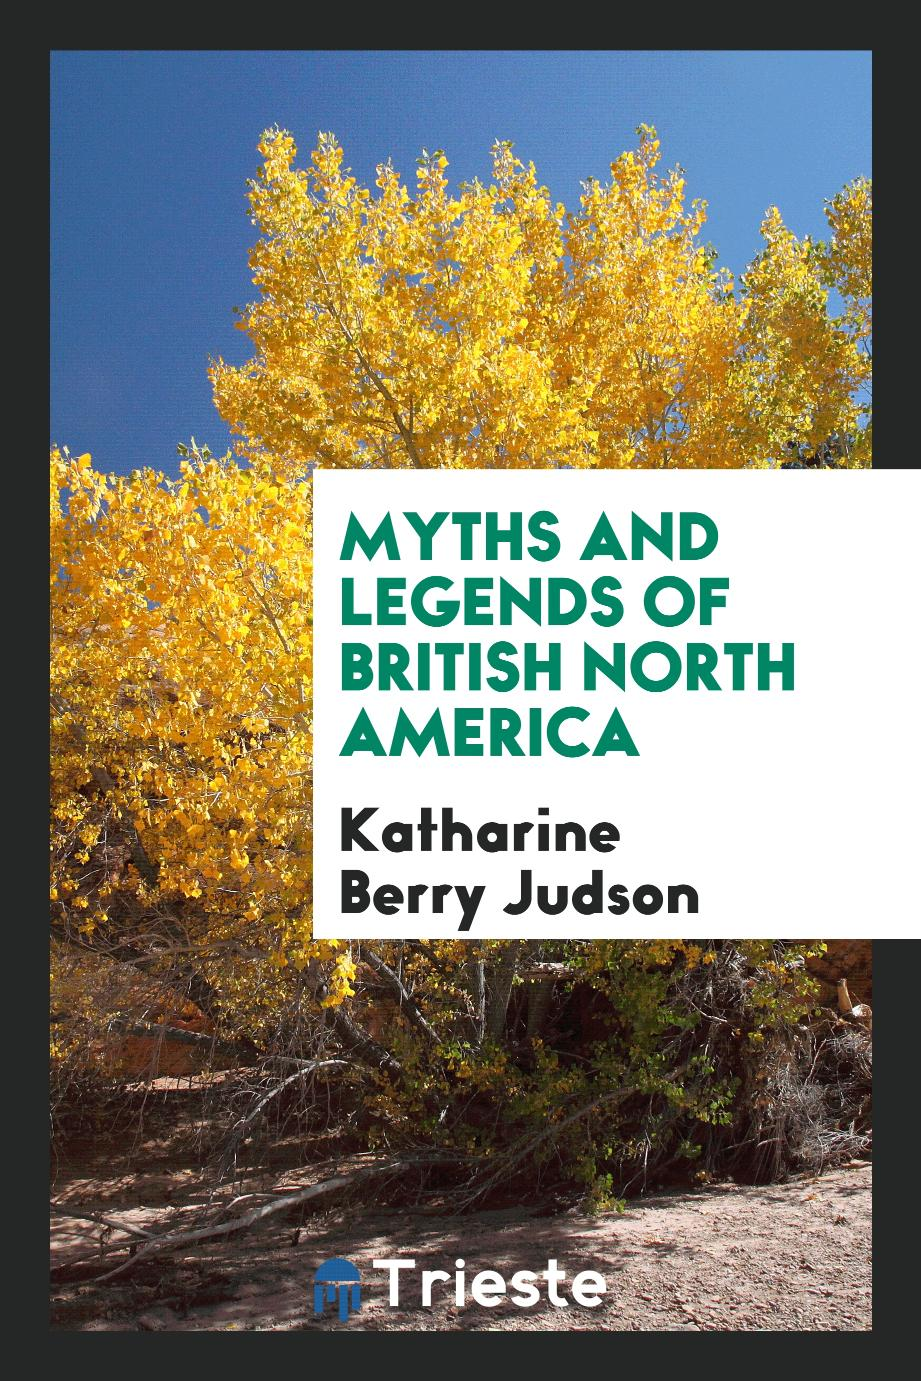 Myths and legends of British North America